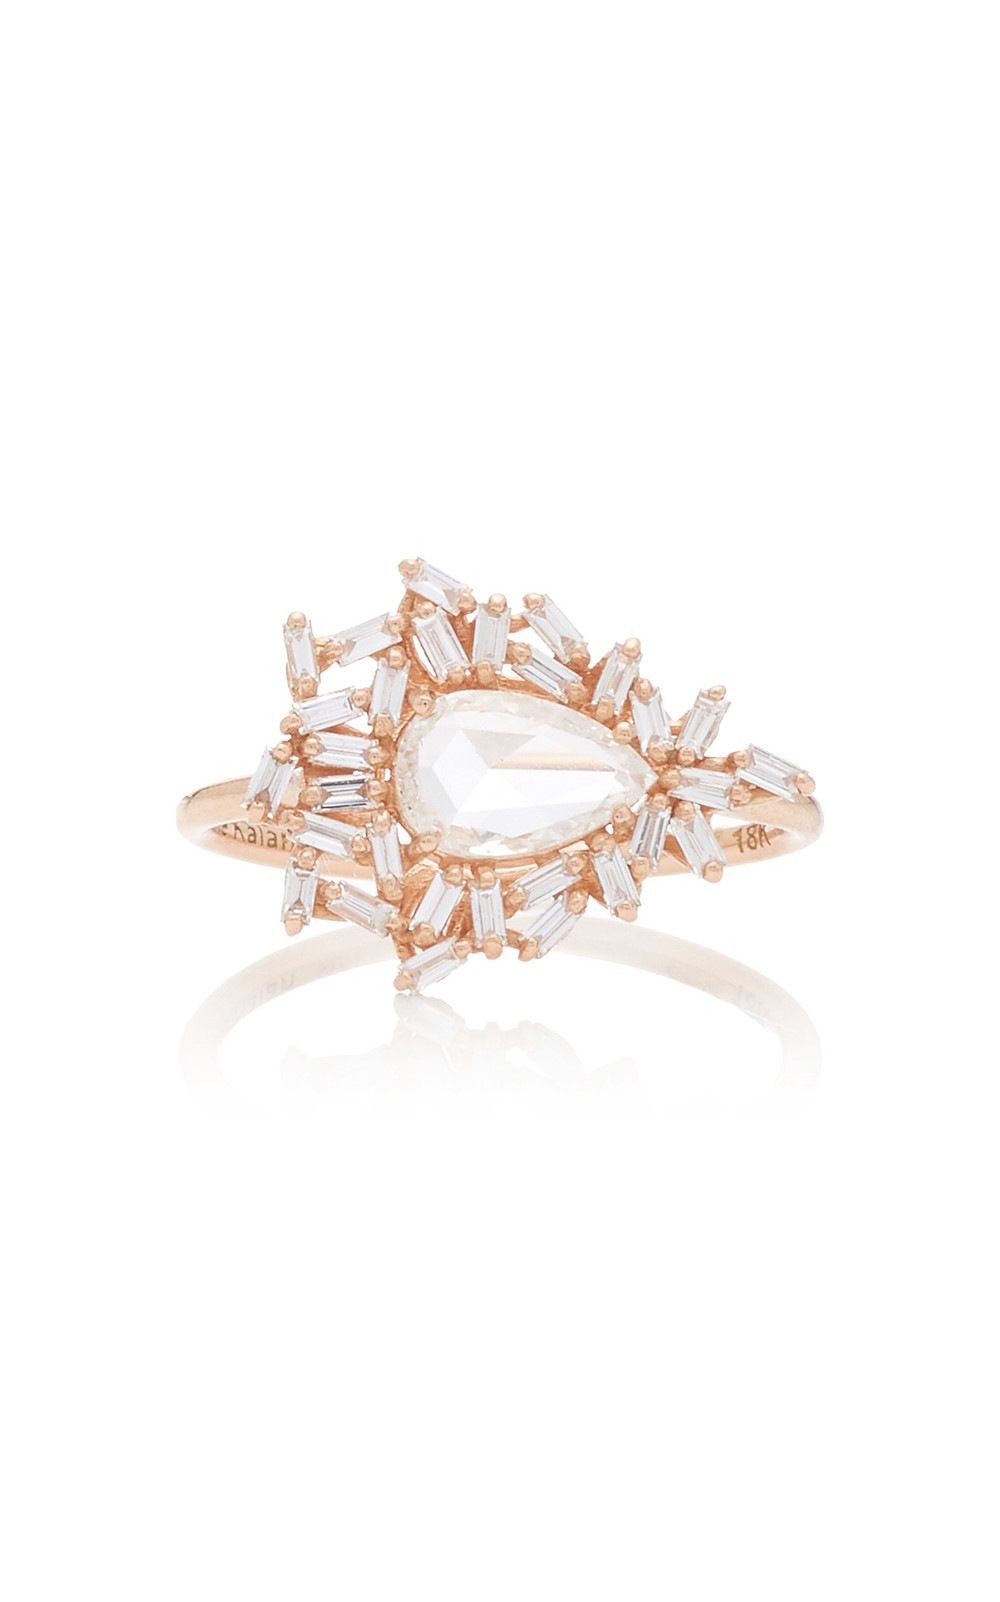 Suzanne Kalan One Of A Kind 18K Rose Gold Diamond Ring in white